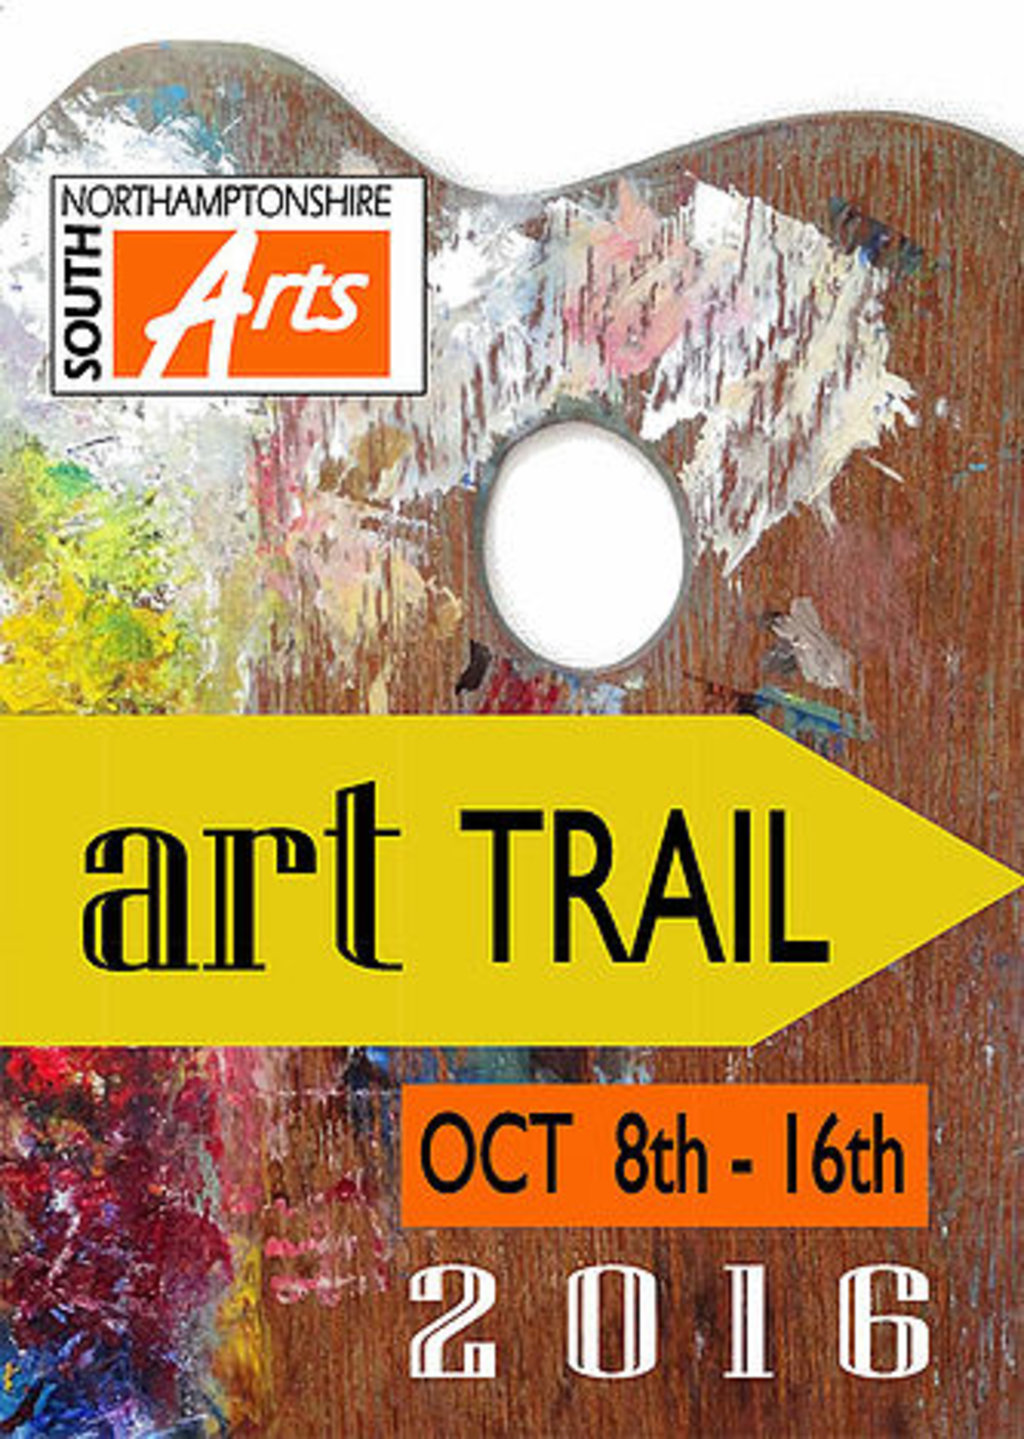 Northamptonshire Arts Trail